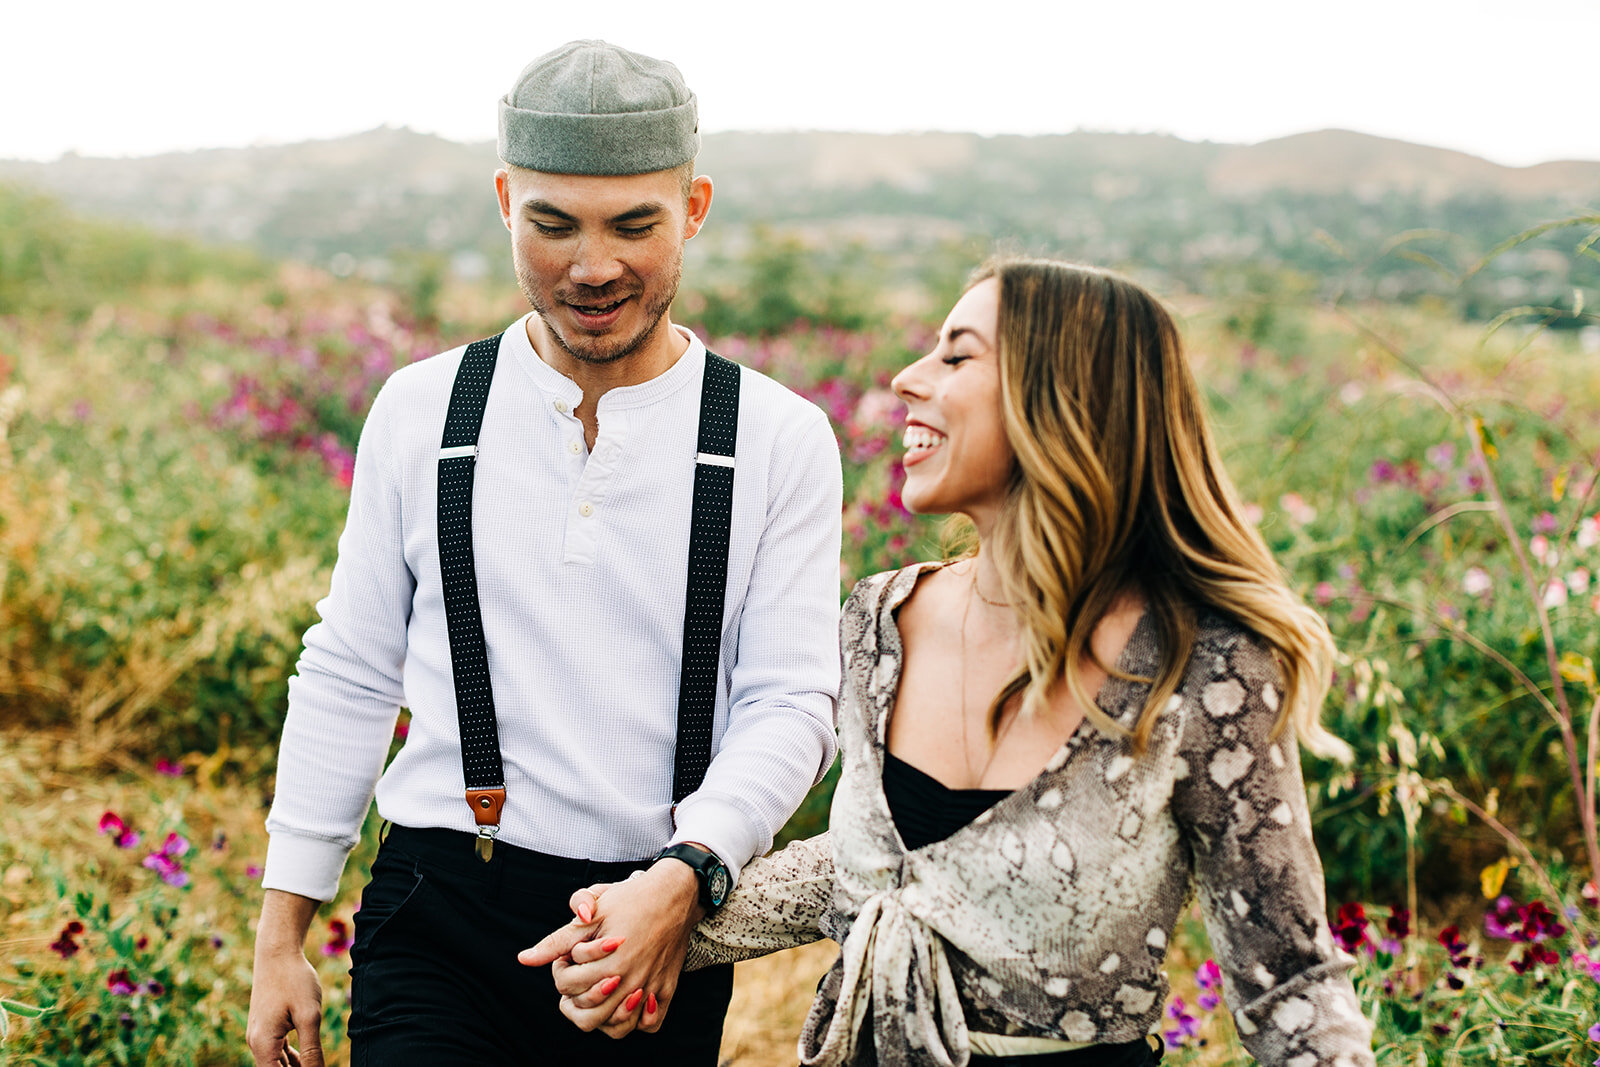 southern-california-wedding-photographer-sweet-pea-fields-engagement-photos_28.jpg